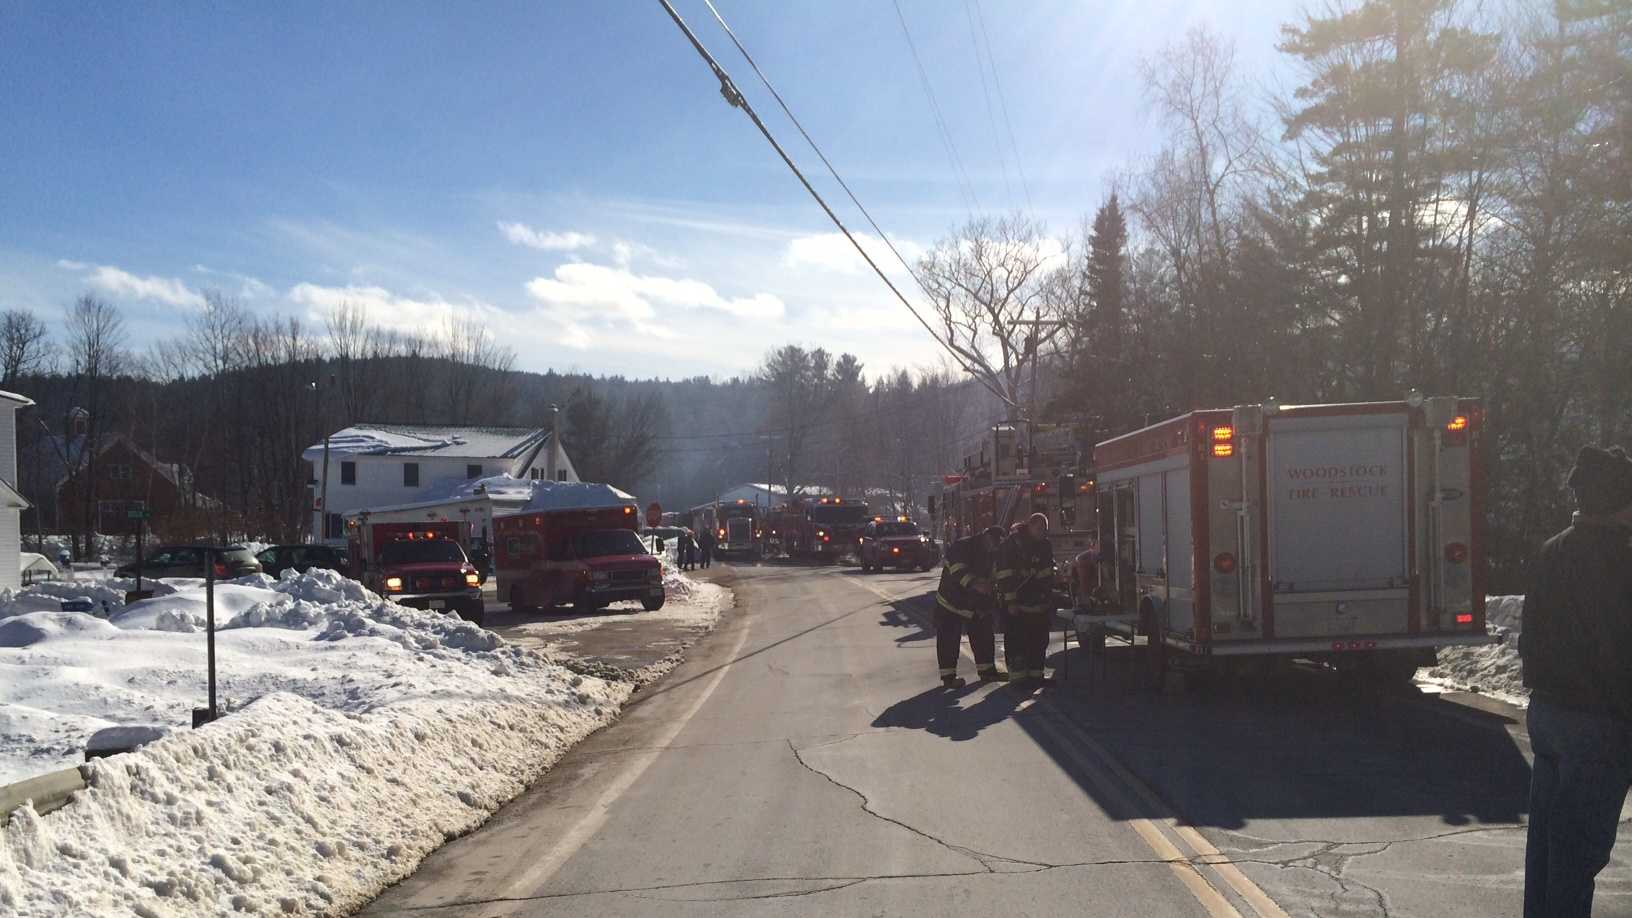 A barn caught fire at 2147 US Route 3 Saturday in Campton.